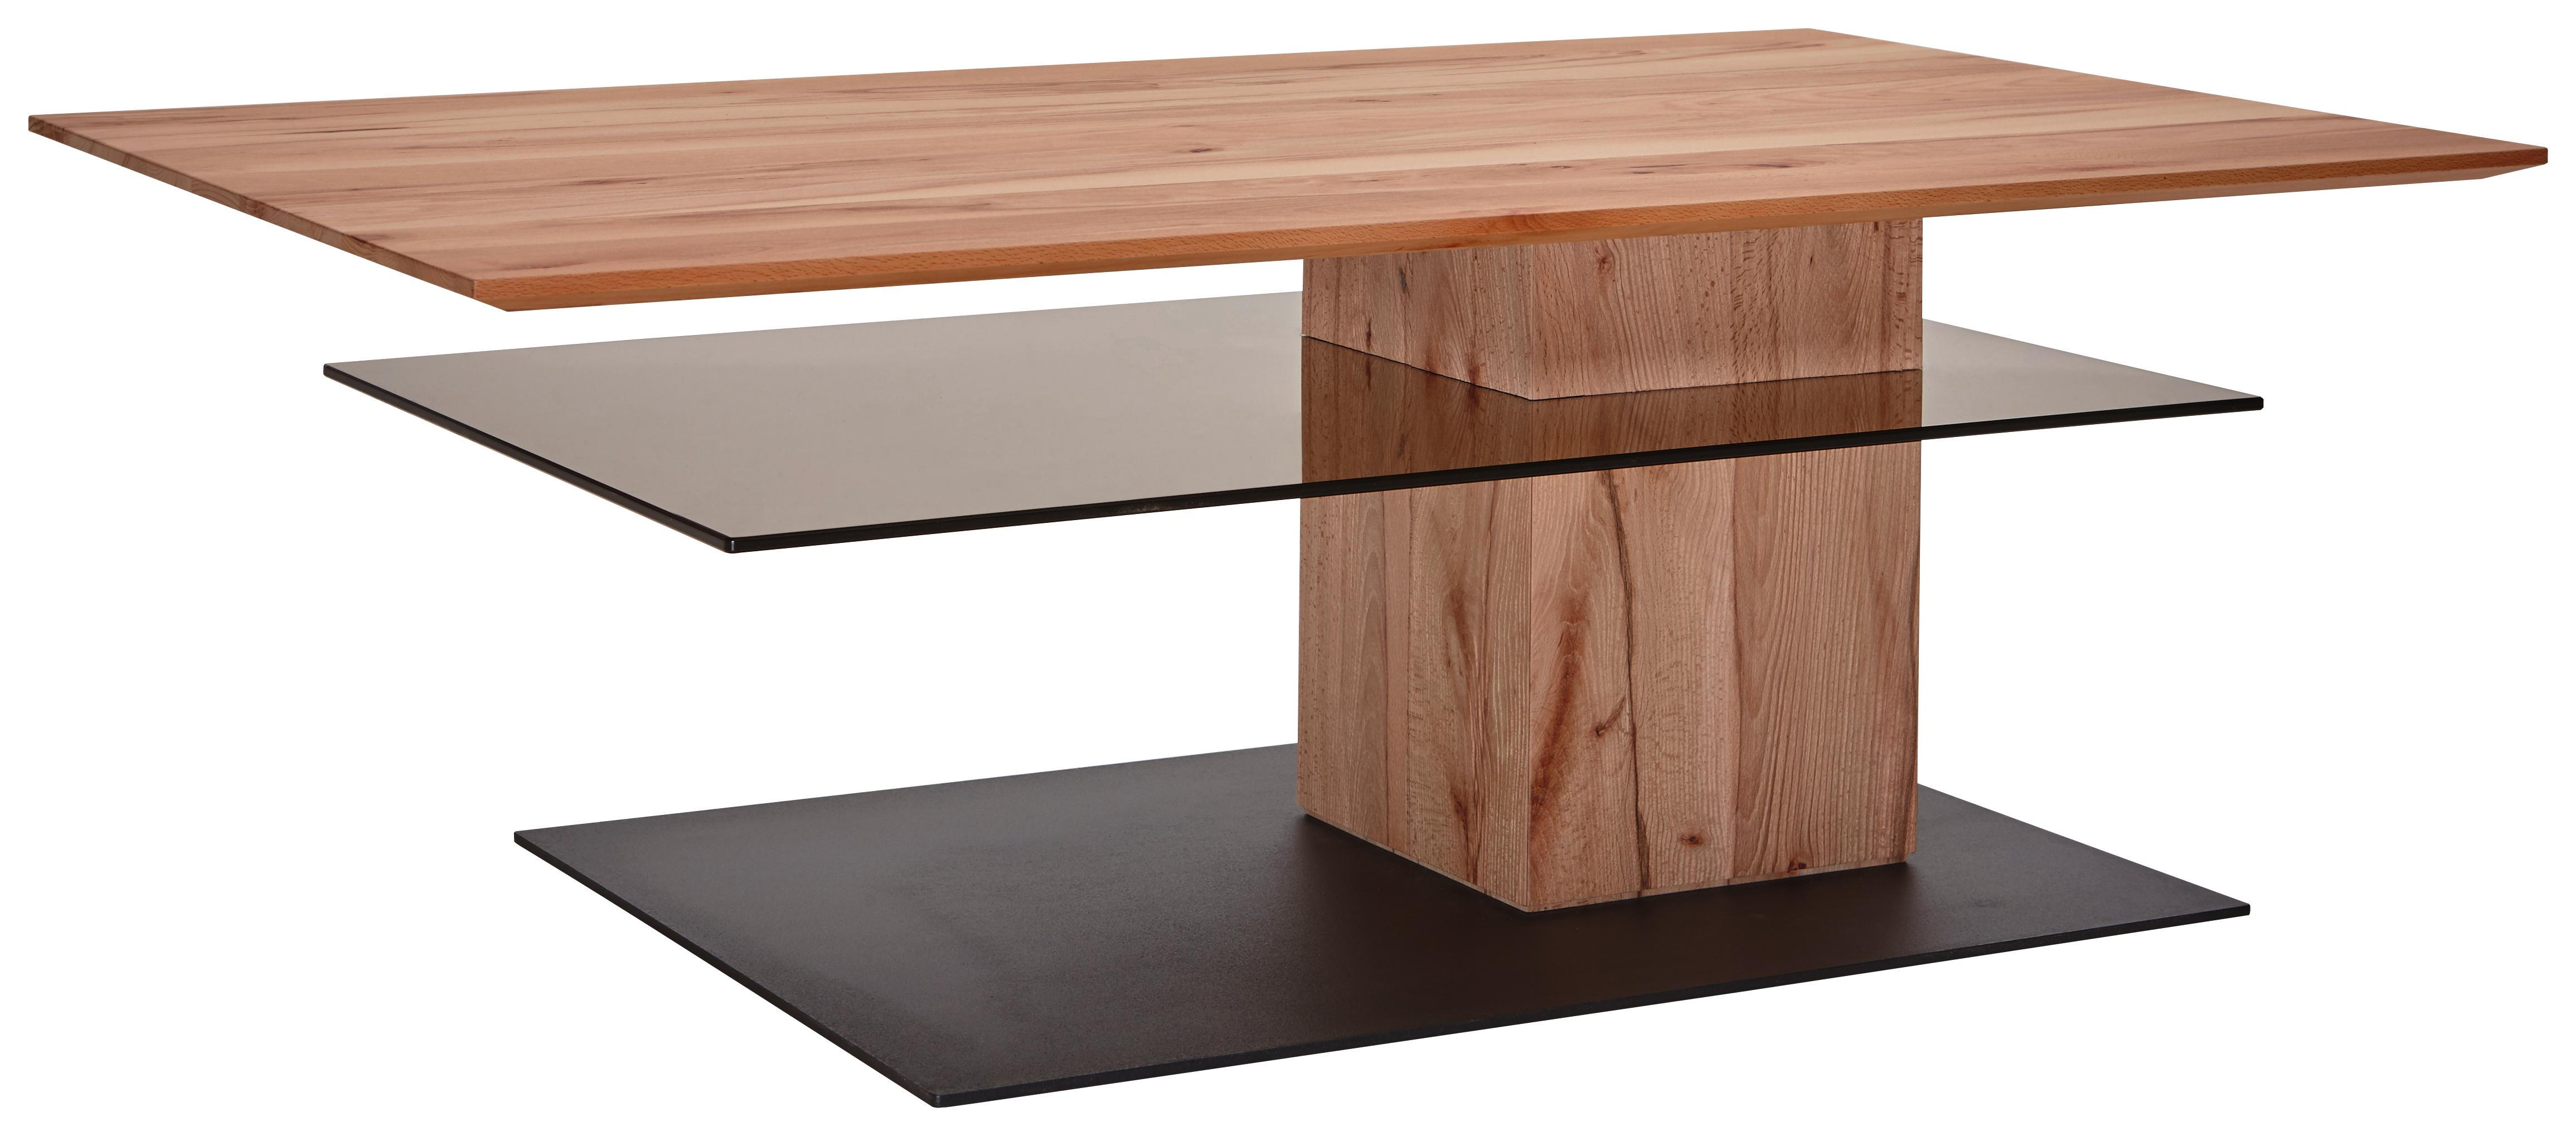 Valnatura Lina Couchtisch In Glas Holz 125 75 44 Cm